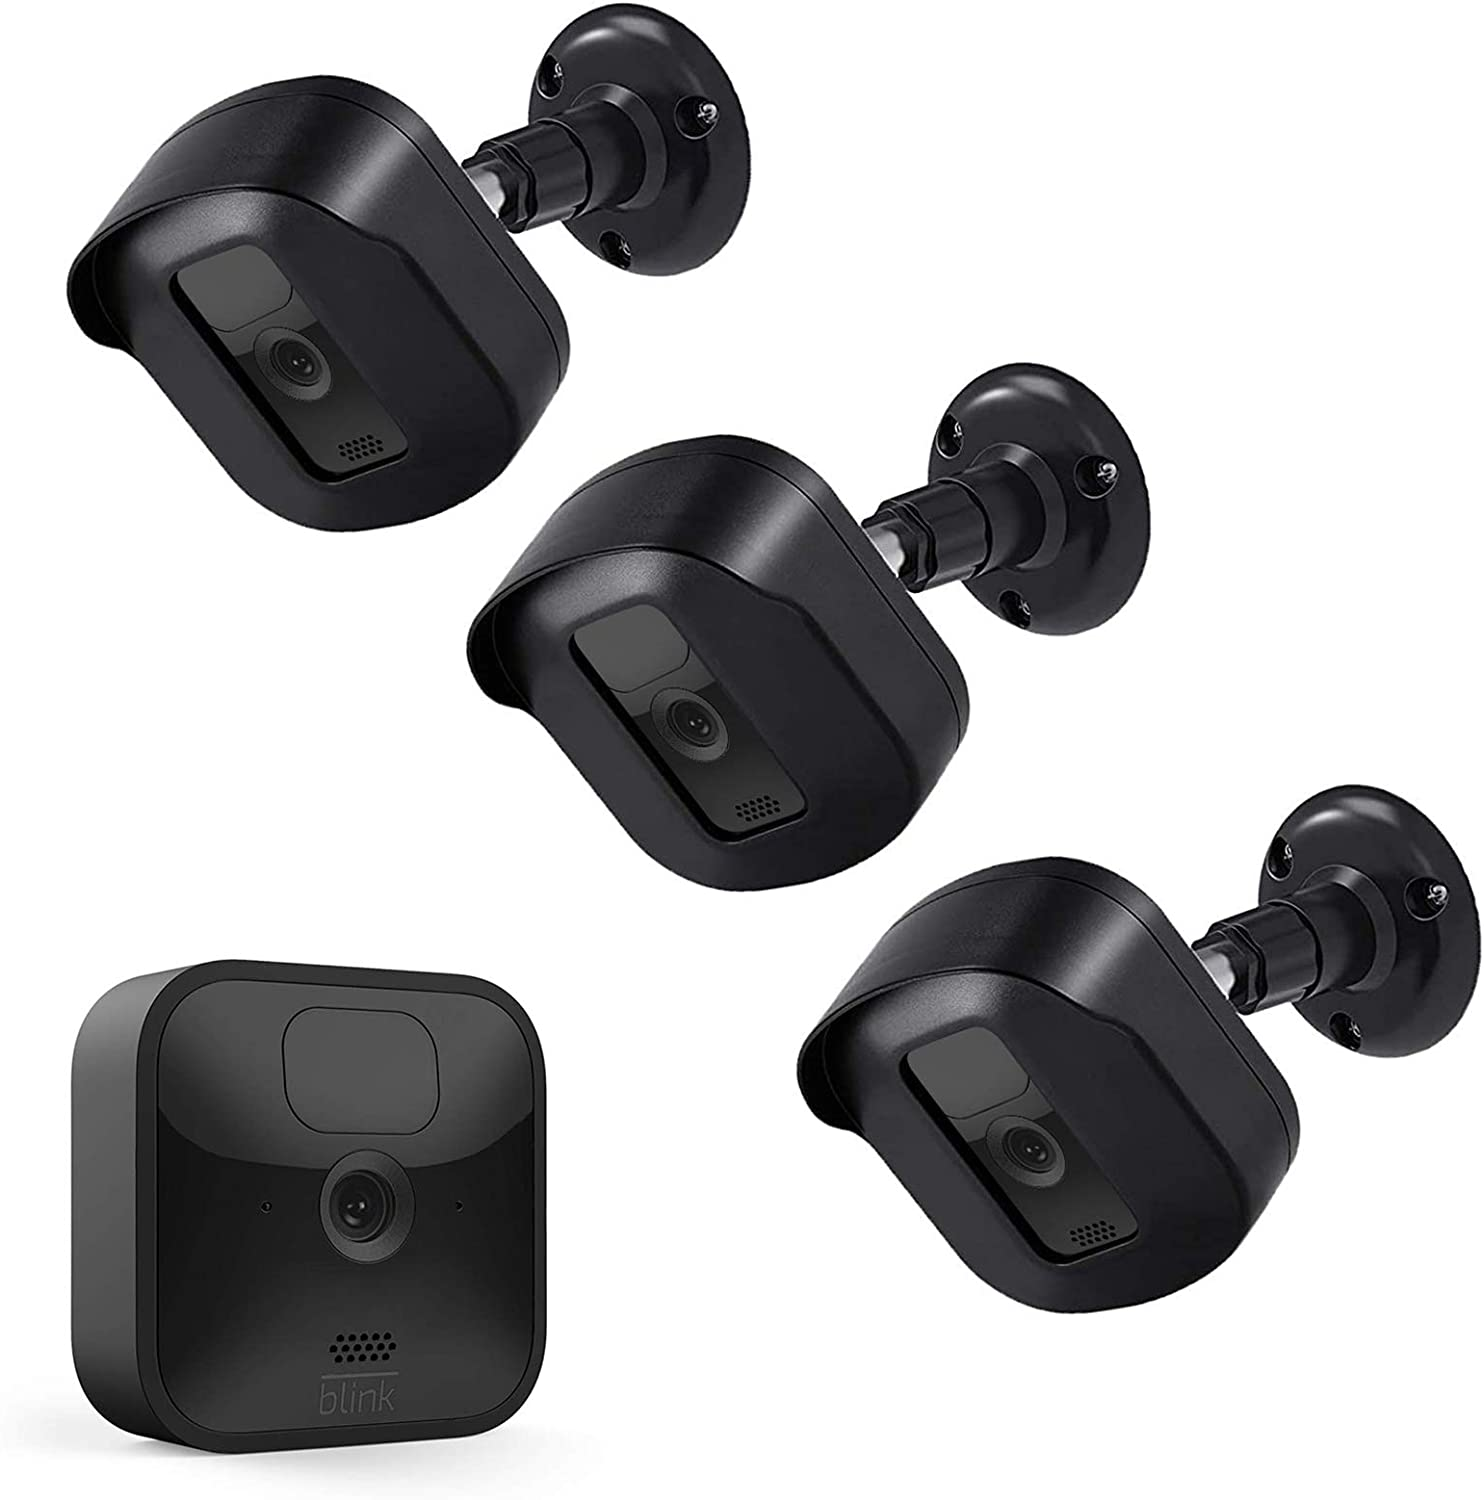 Blink Outdoor Camera Mount 360 Degree Adjustable Mount with Blink Sync Module 2 Outlet Mount for All-New Blink Outdoor Indoor Security Camera System Black, 5 Pack